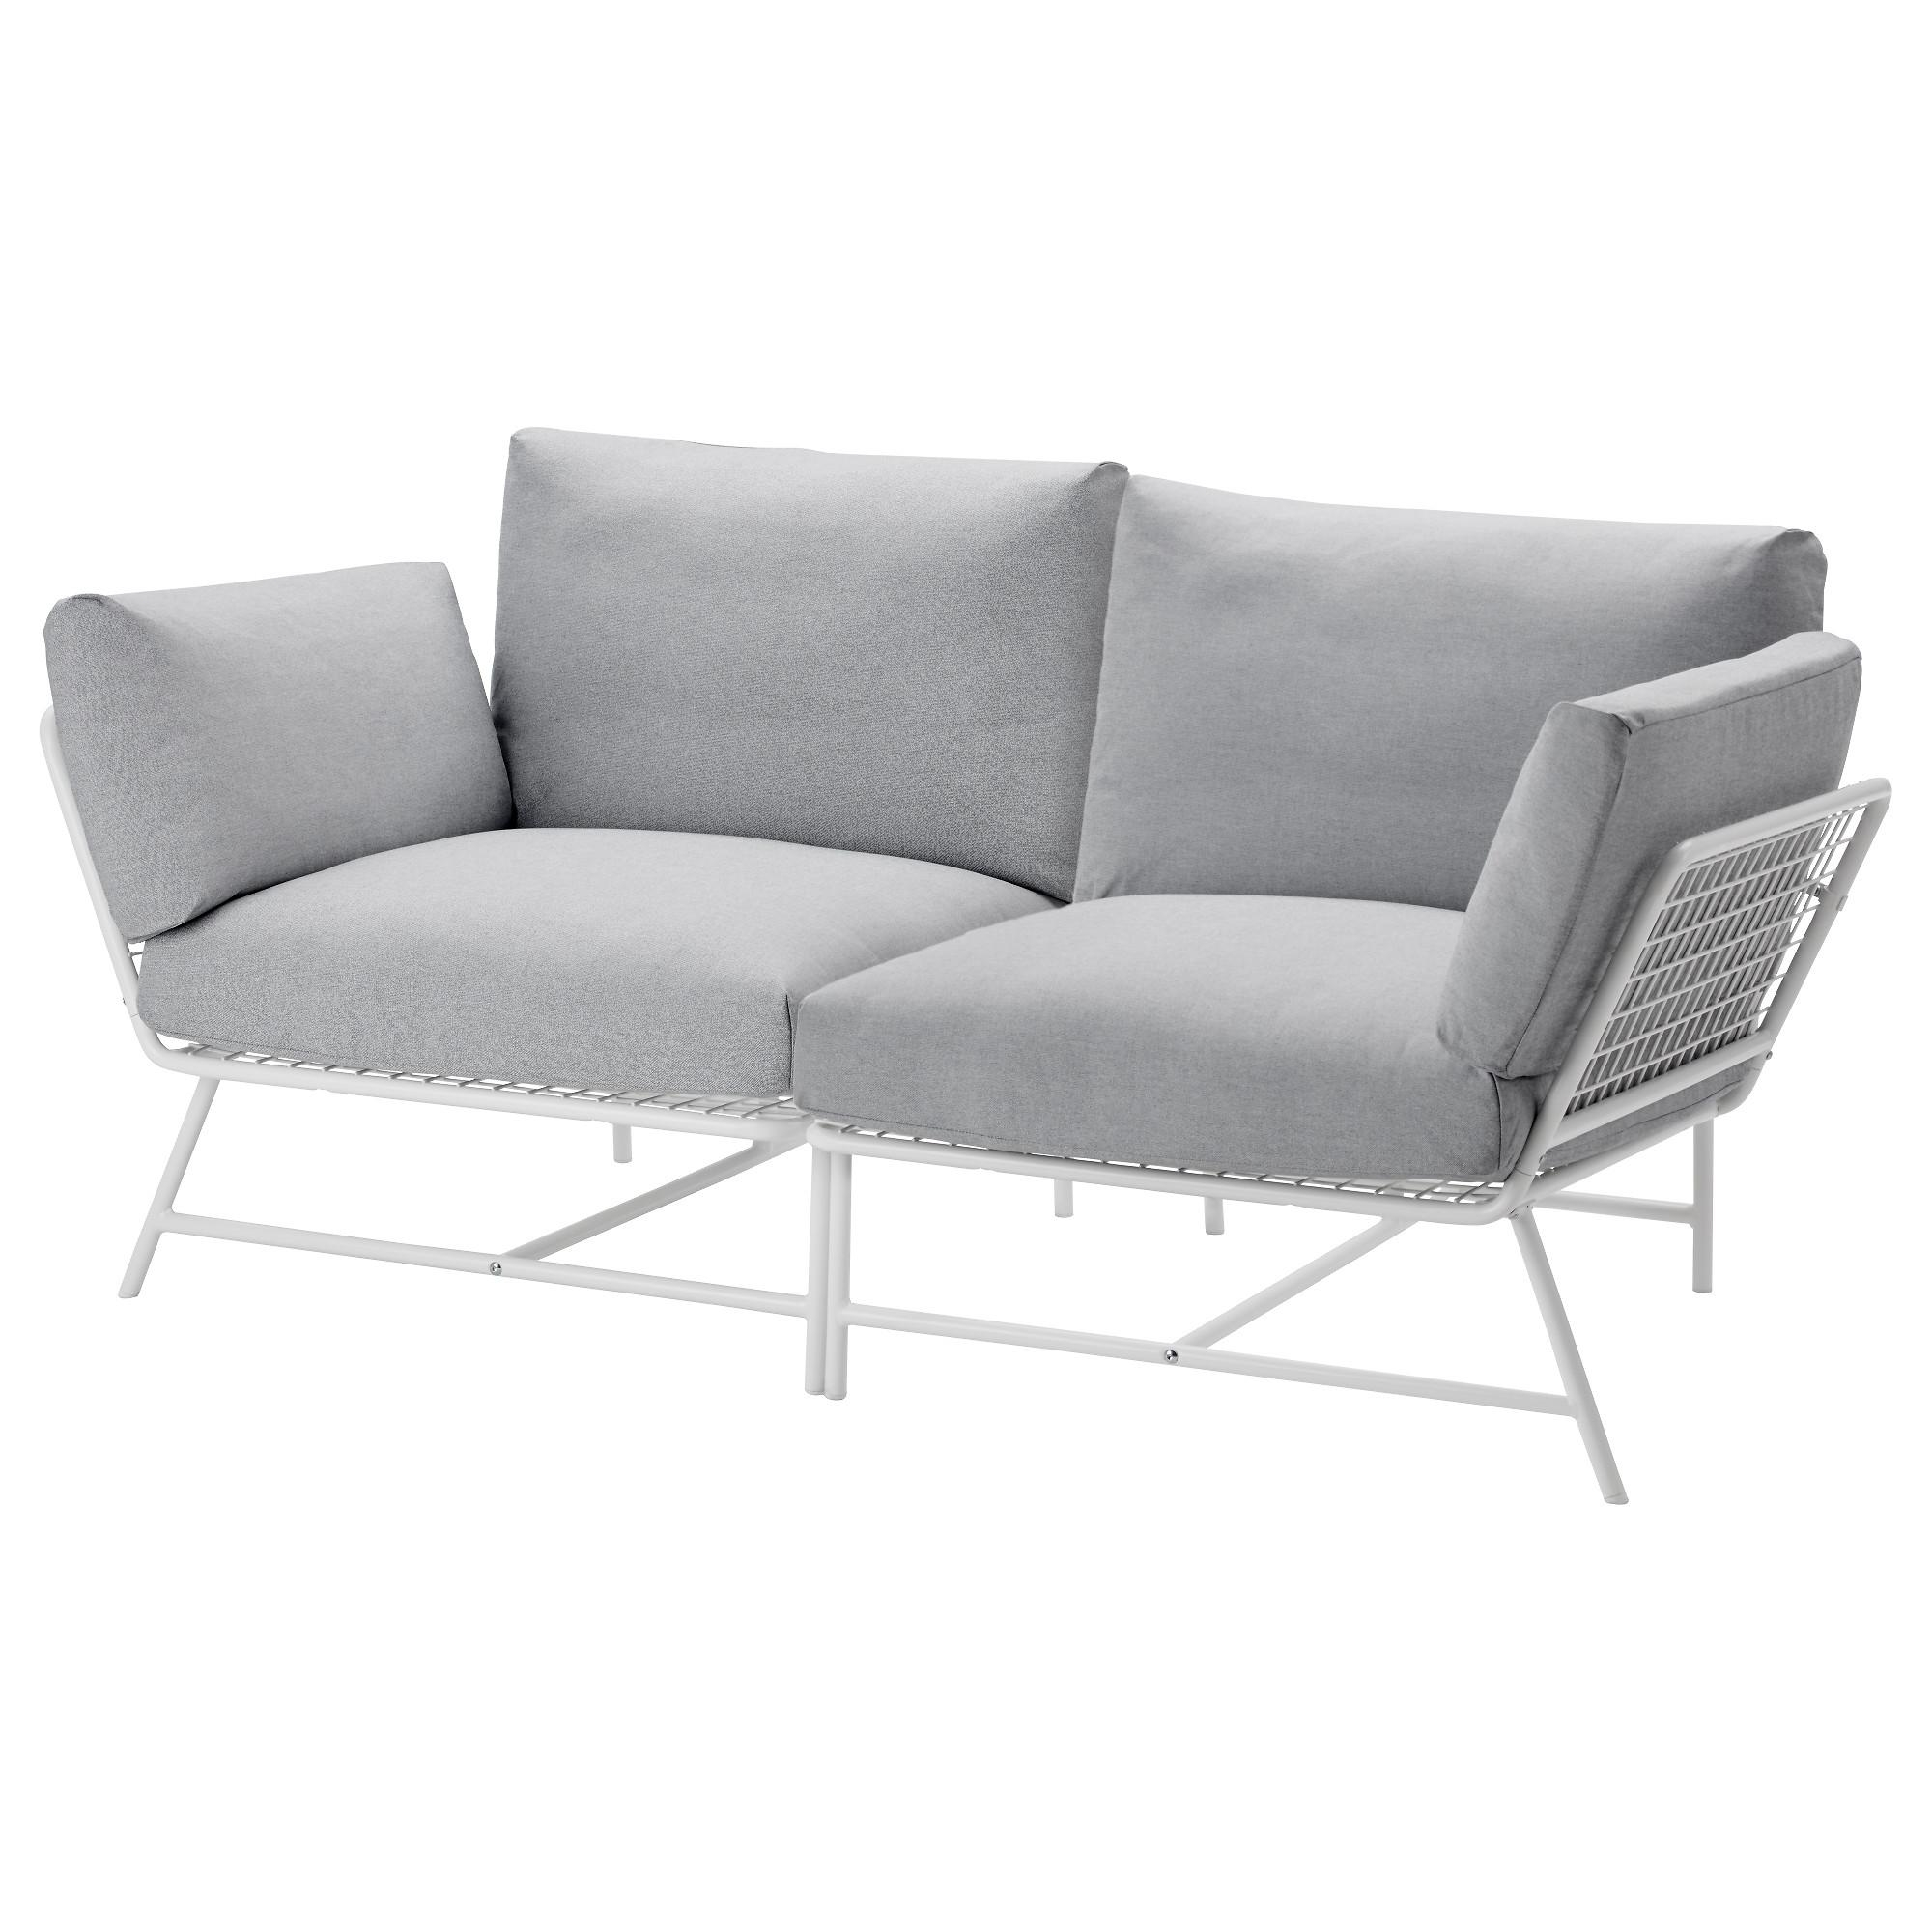 Sofas Armchairs Ikea Within Small Image 20 Of